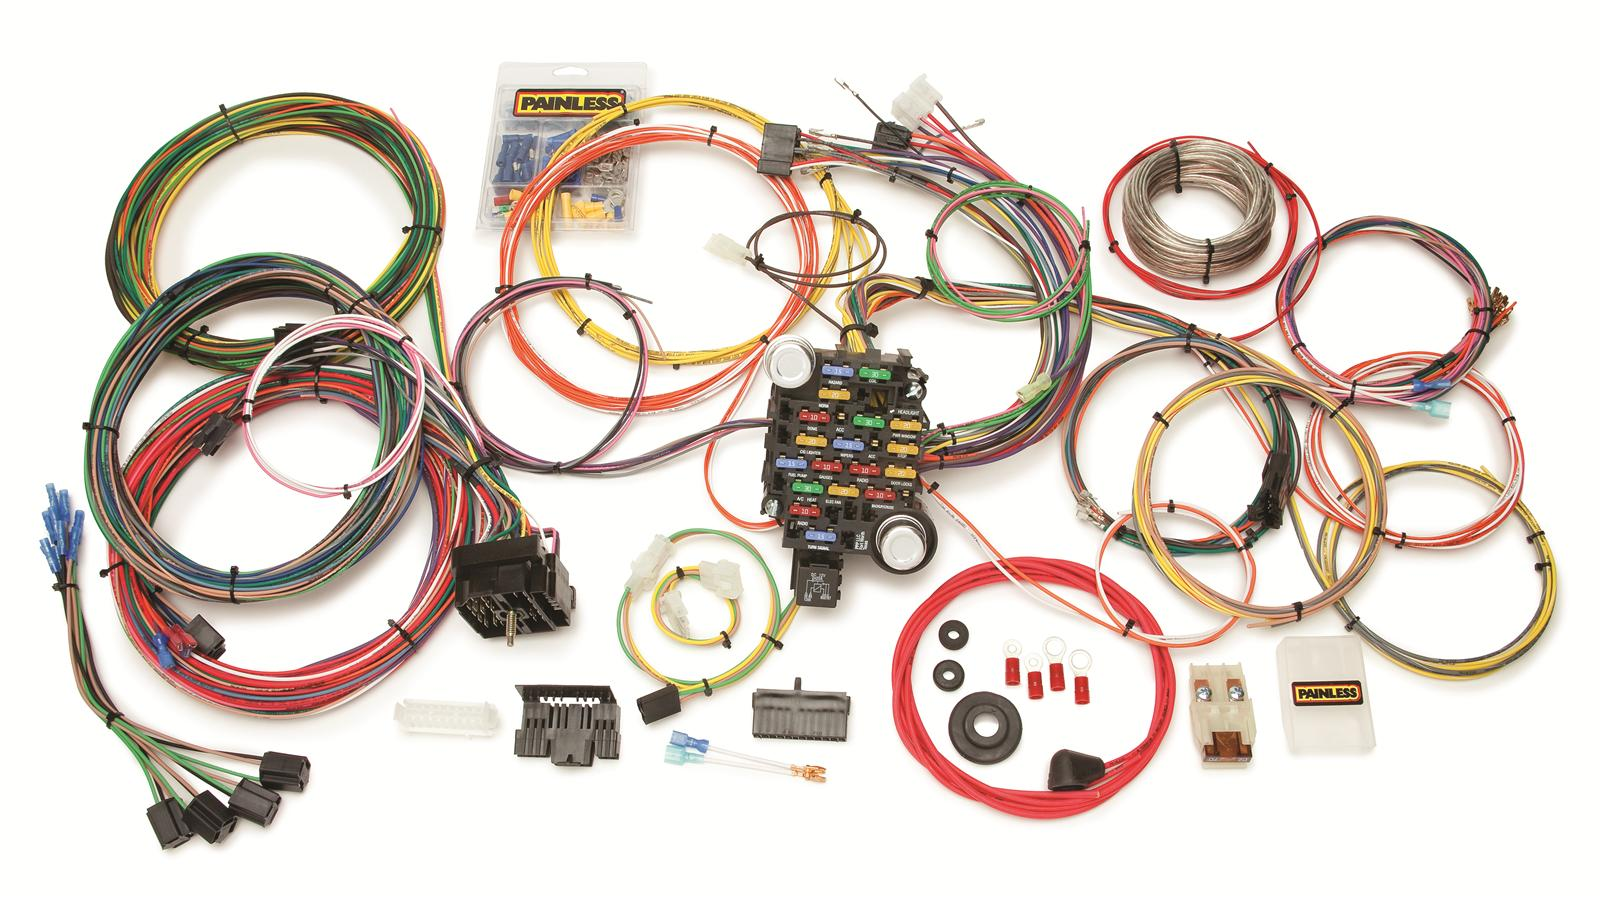 prf 10205_xl painless performance gmc chevy truck harnesses 10205 free painless wiring harness at crackthecode.co